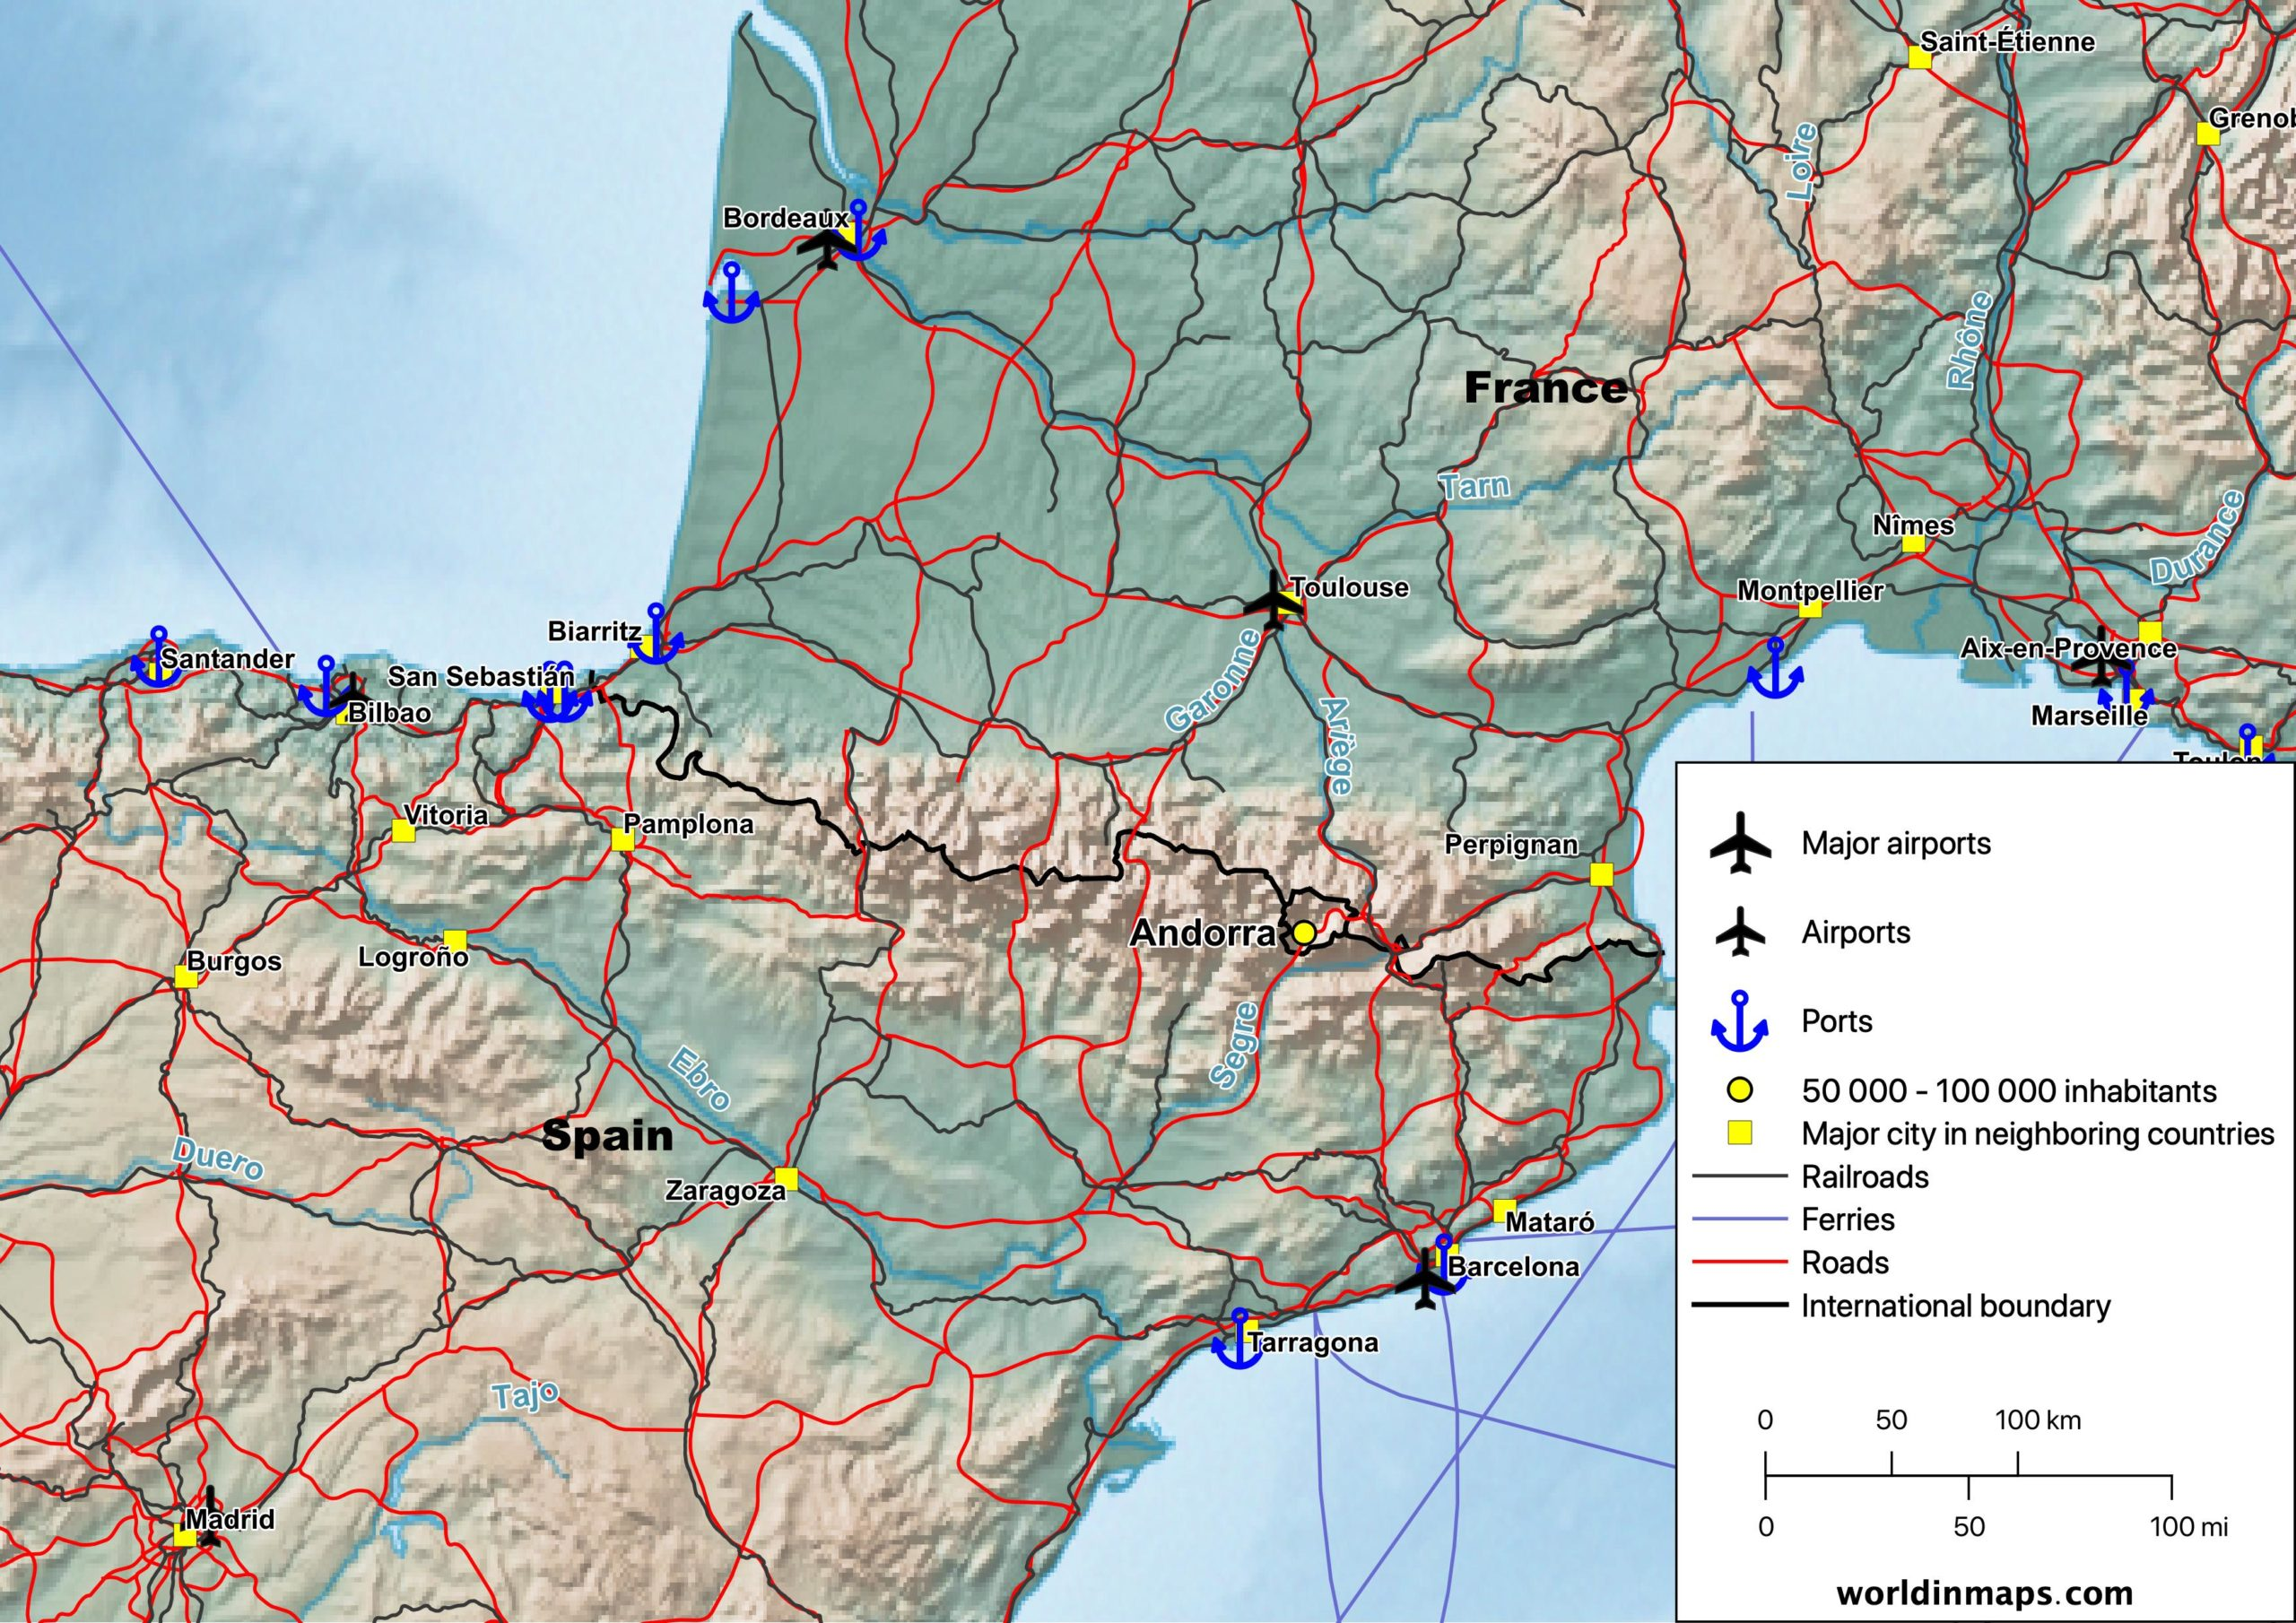 Cities, airports, ports, railroads, ferries and road map of Andorra and the surrounding areas